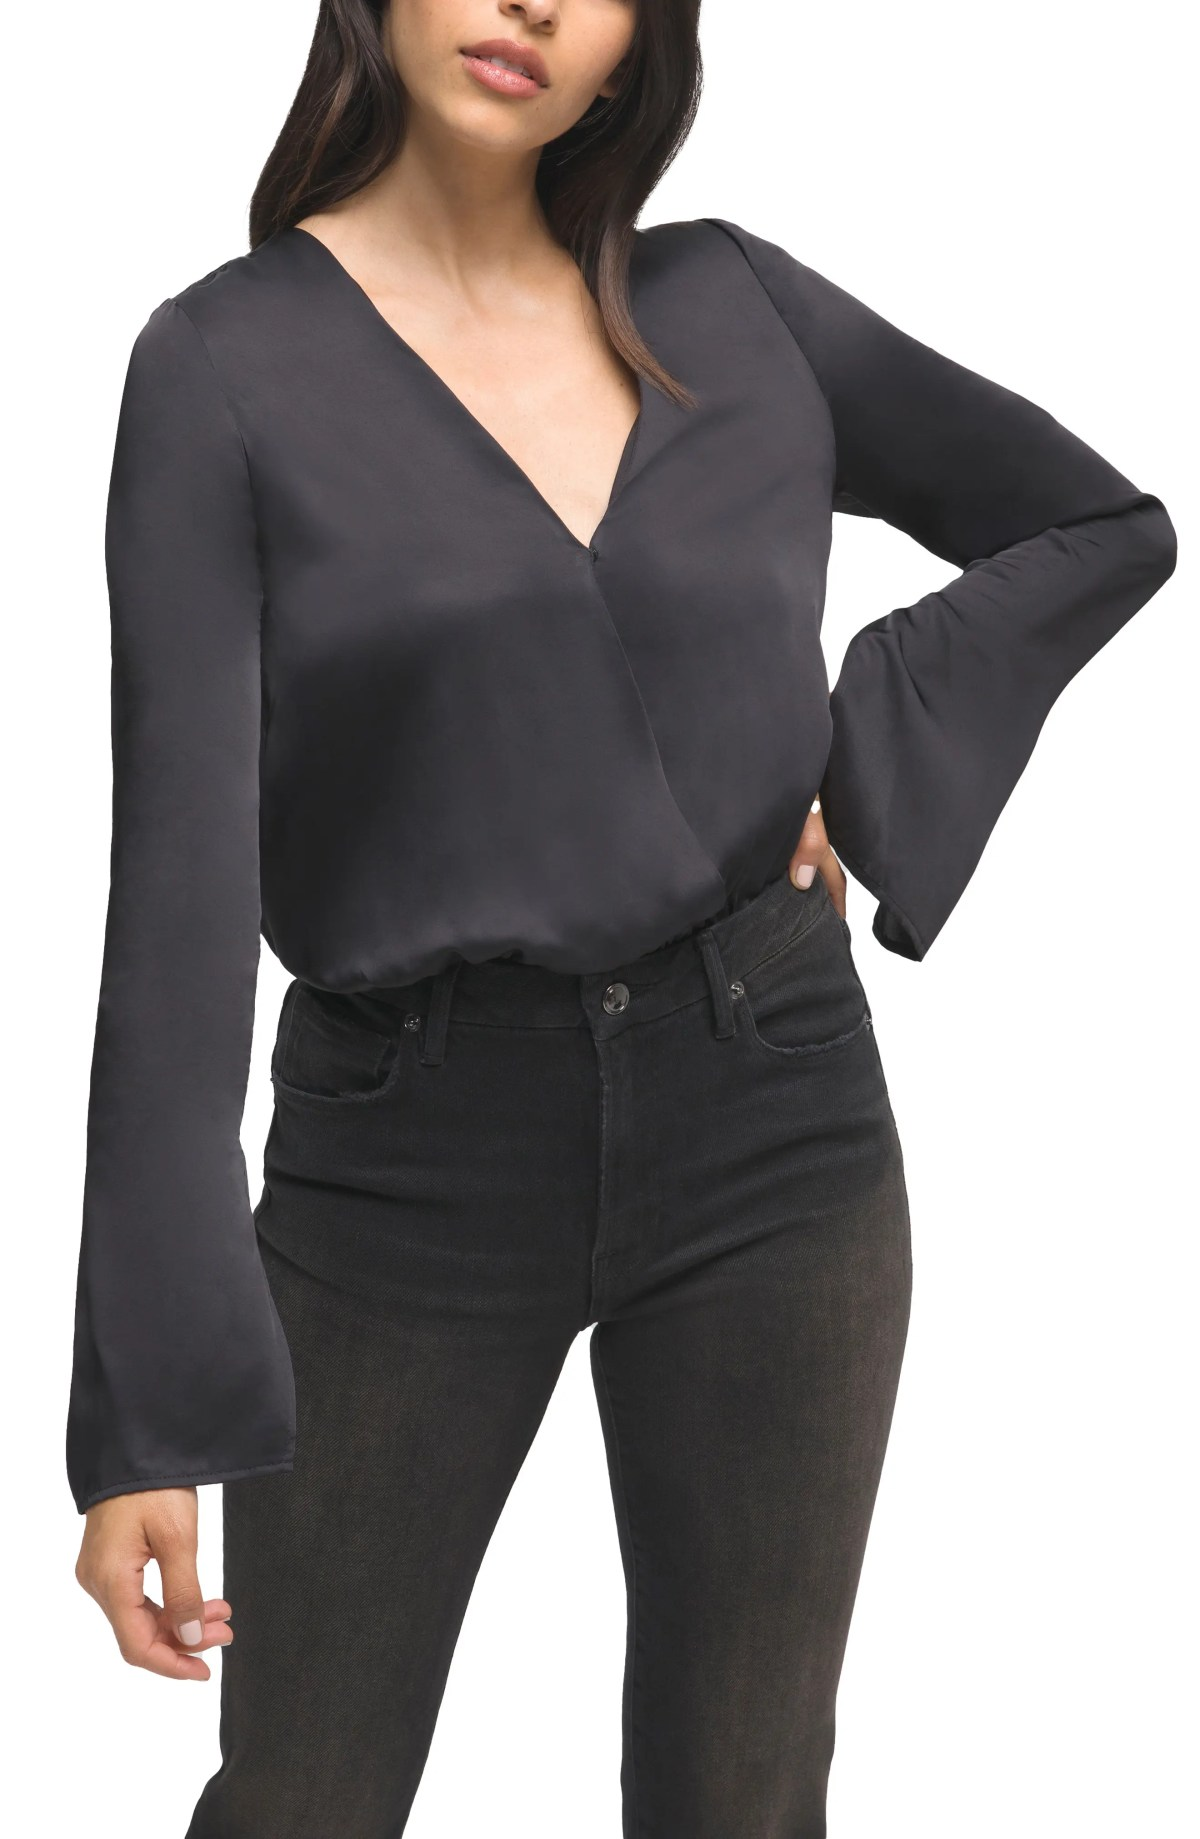 GOOD AMERICAN Wrap Front Long Sleeve Satin Bodysuit, Main, color, BLACK001